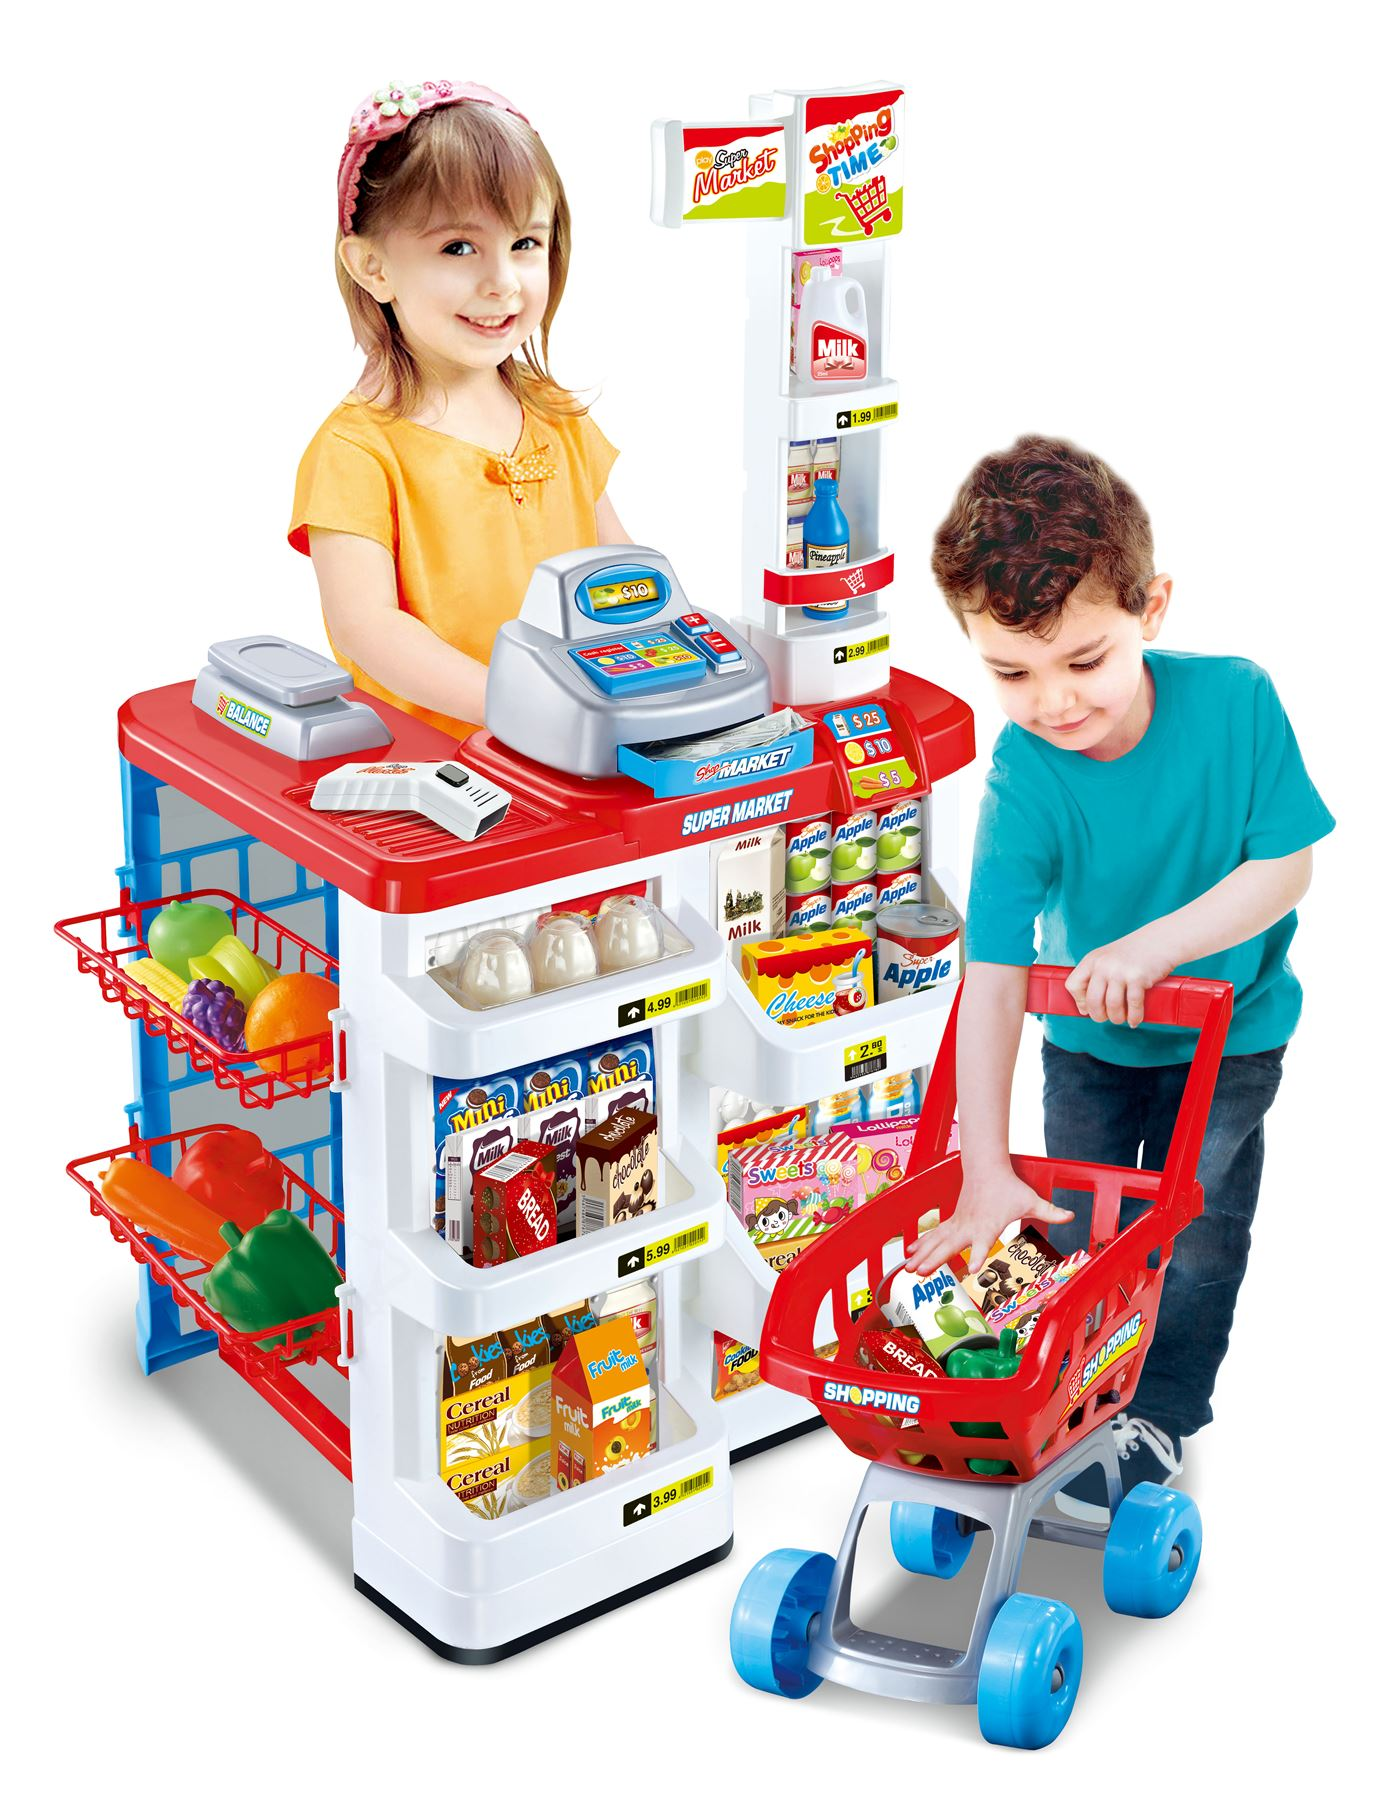 Toys For Kids : Children kids role pretend play supermarket superstore